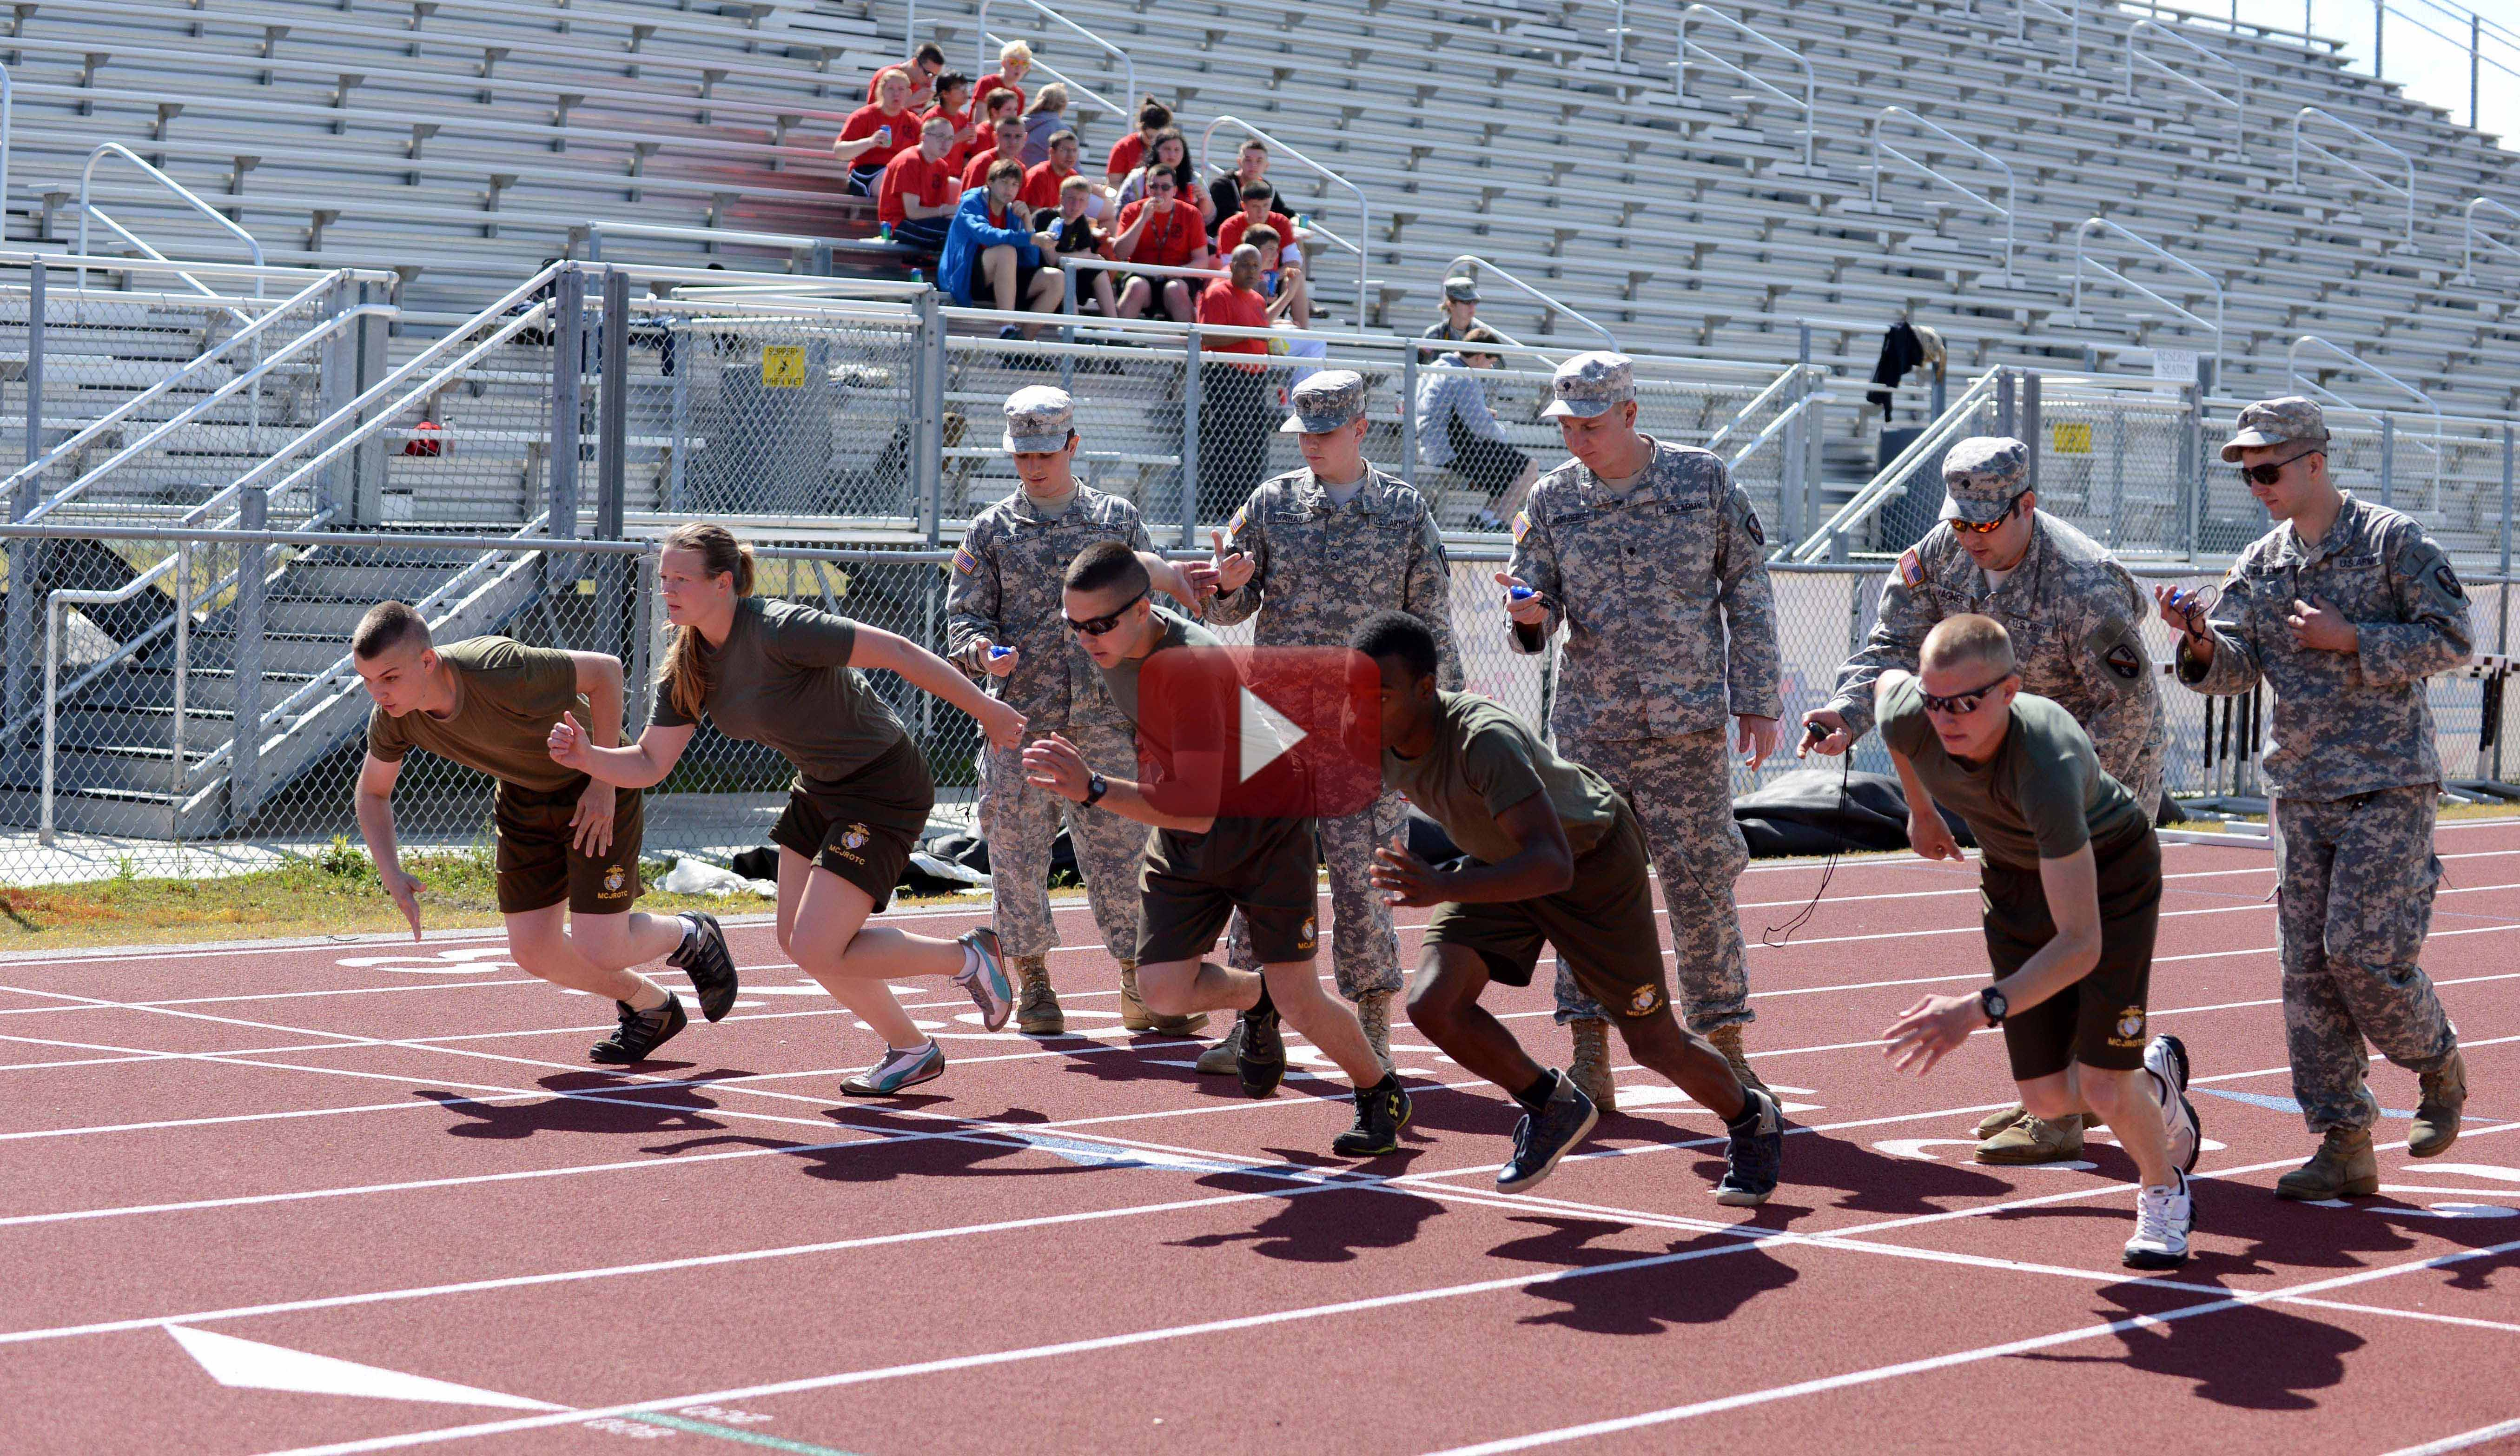 La. Guard sponsors JROTC sports event